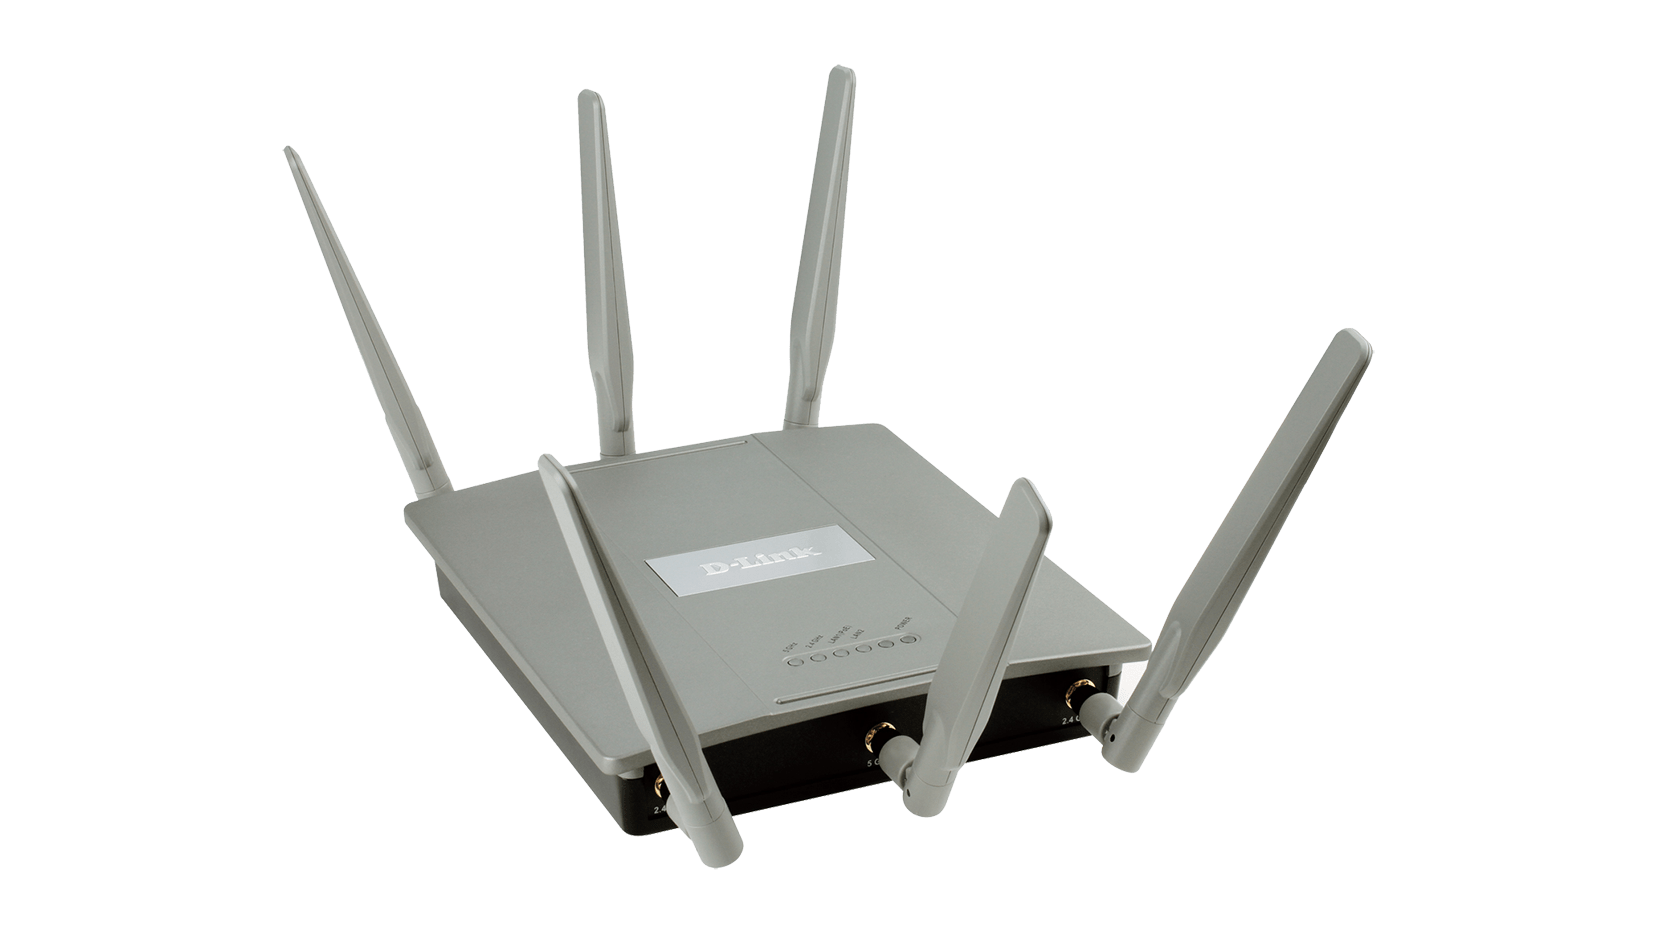 ac1750 wireless dual band poe access point singapore